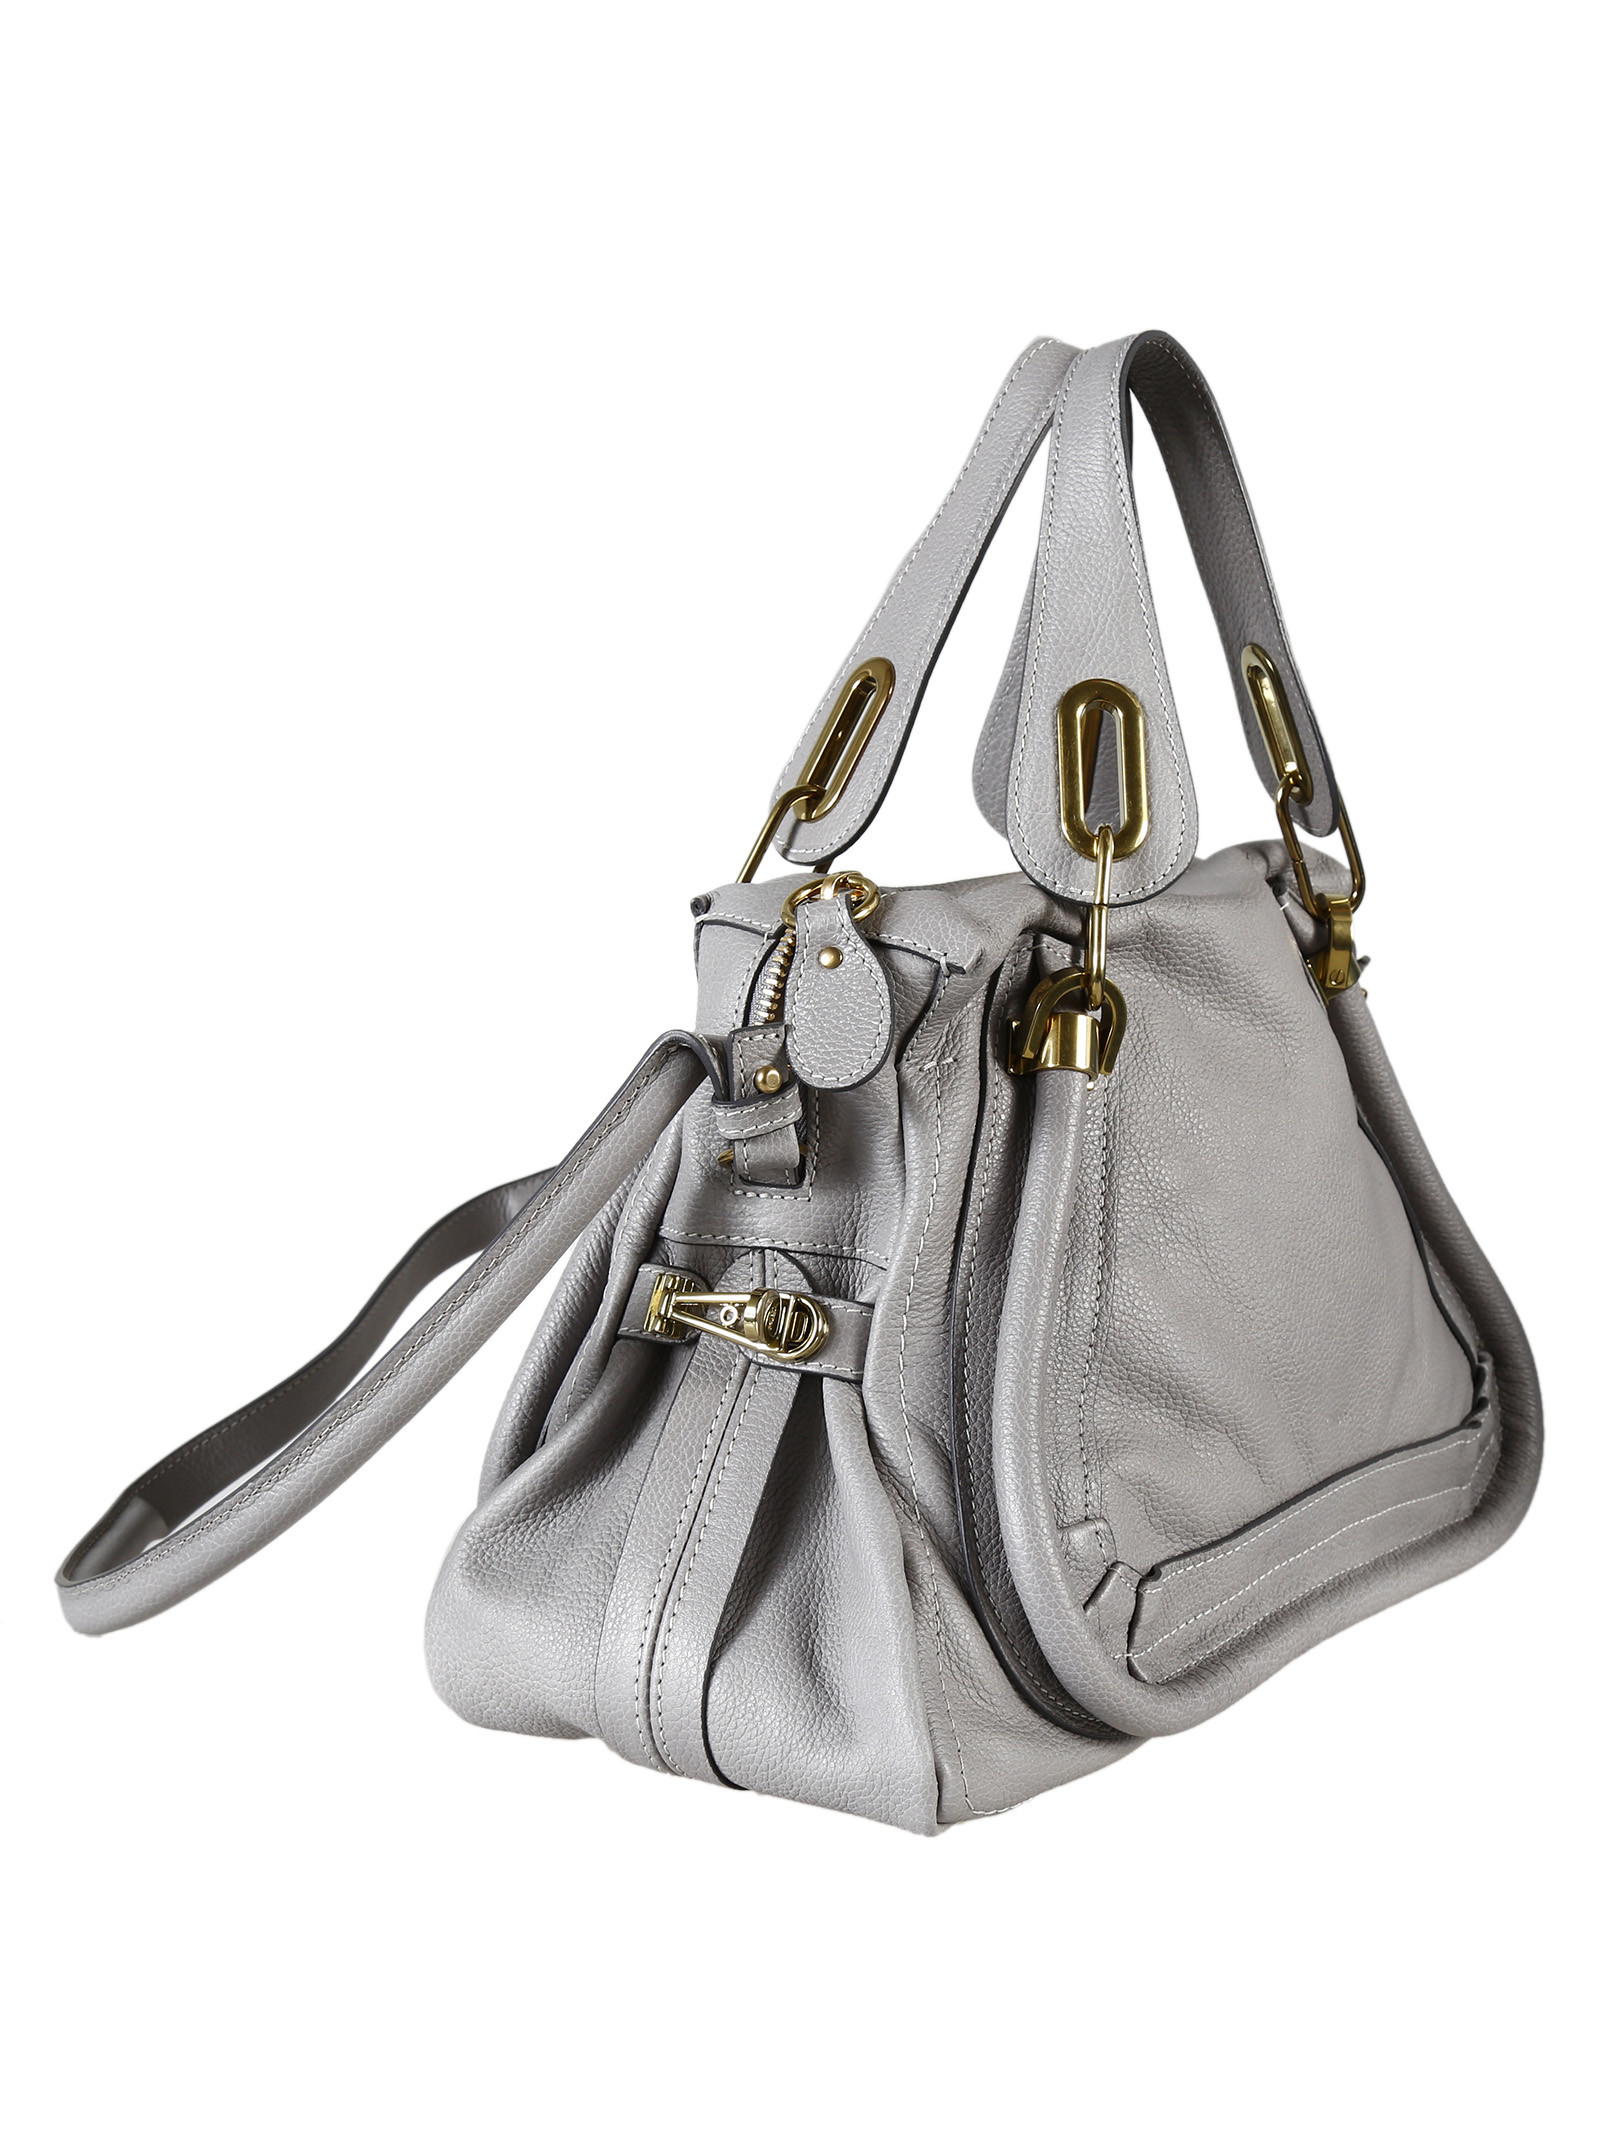 Chlo¨¦ Chlo Paraty Meduim Tote Bag in Gray (Cashmere Grey) | Lyst